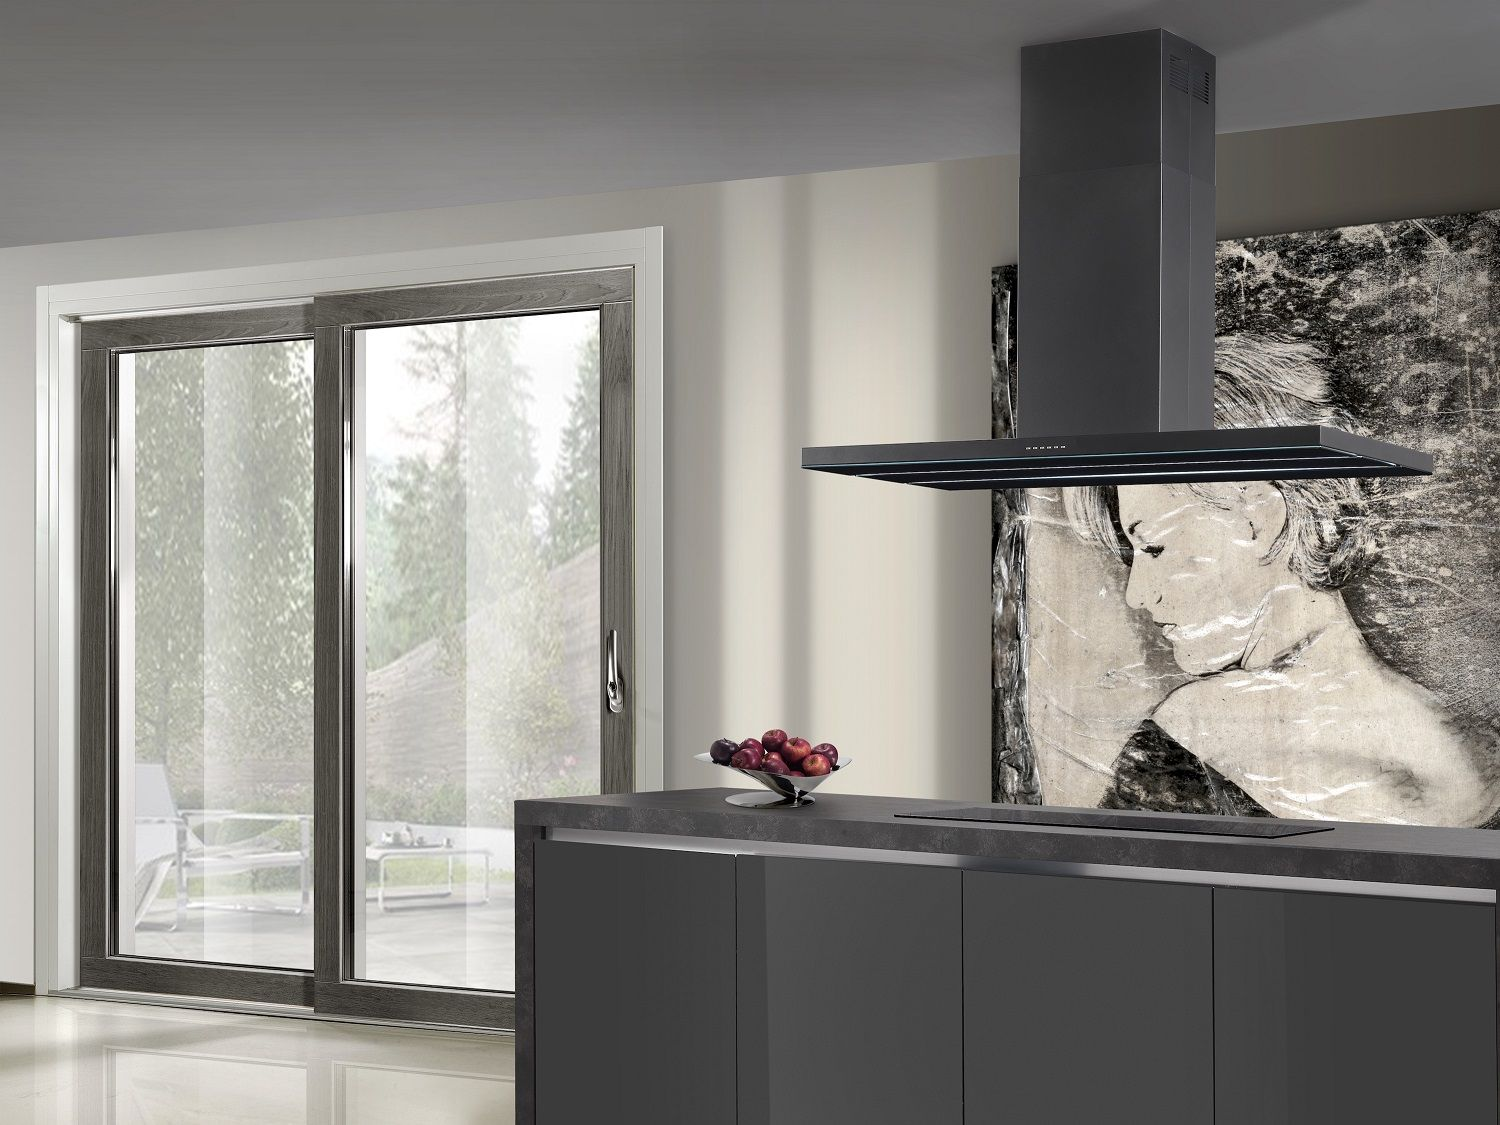 AIRUNO expands Collection of Island Hoods Kitchens